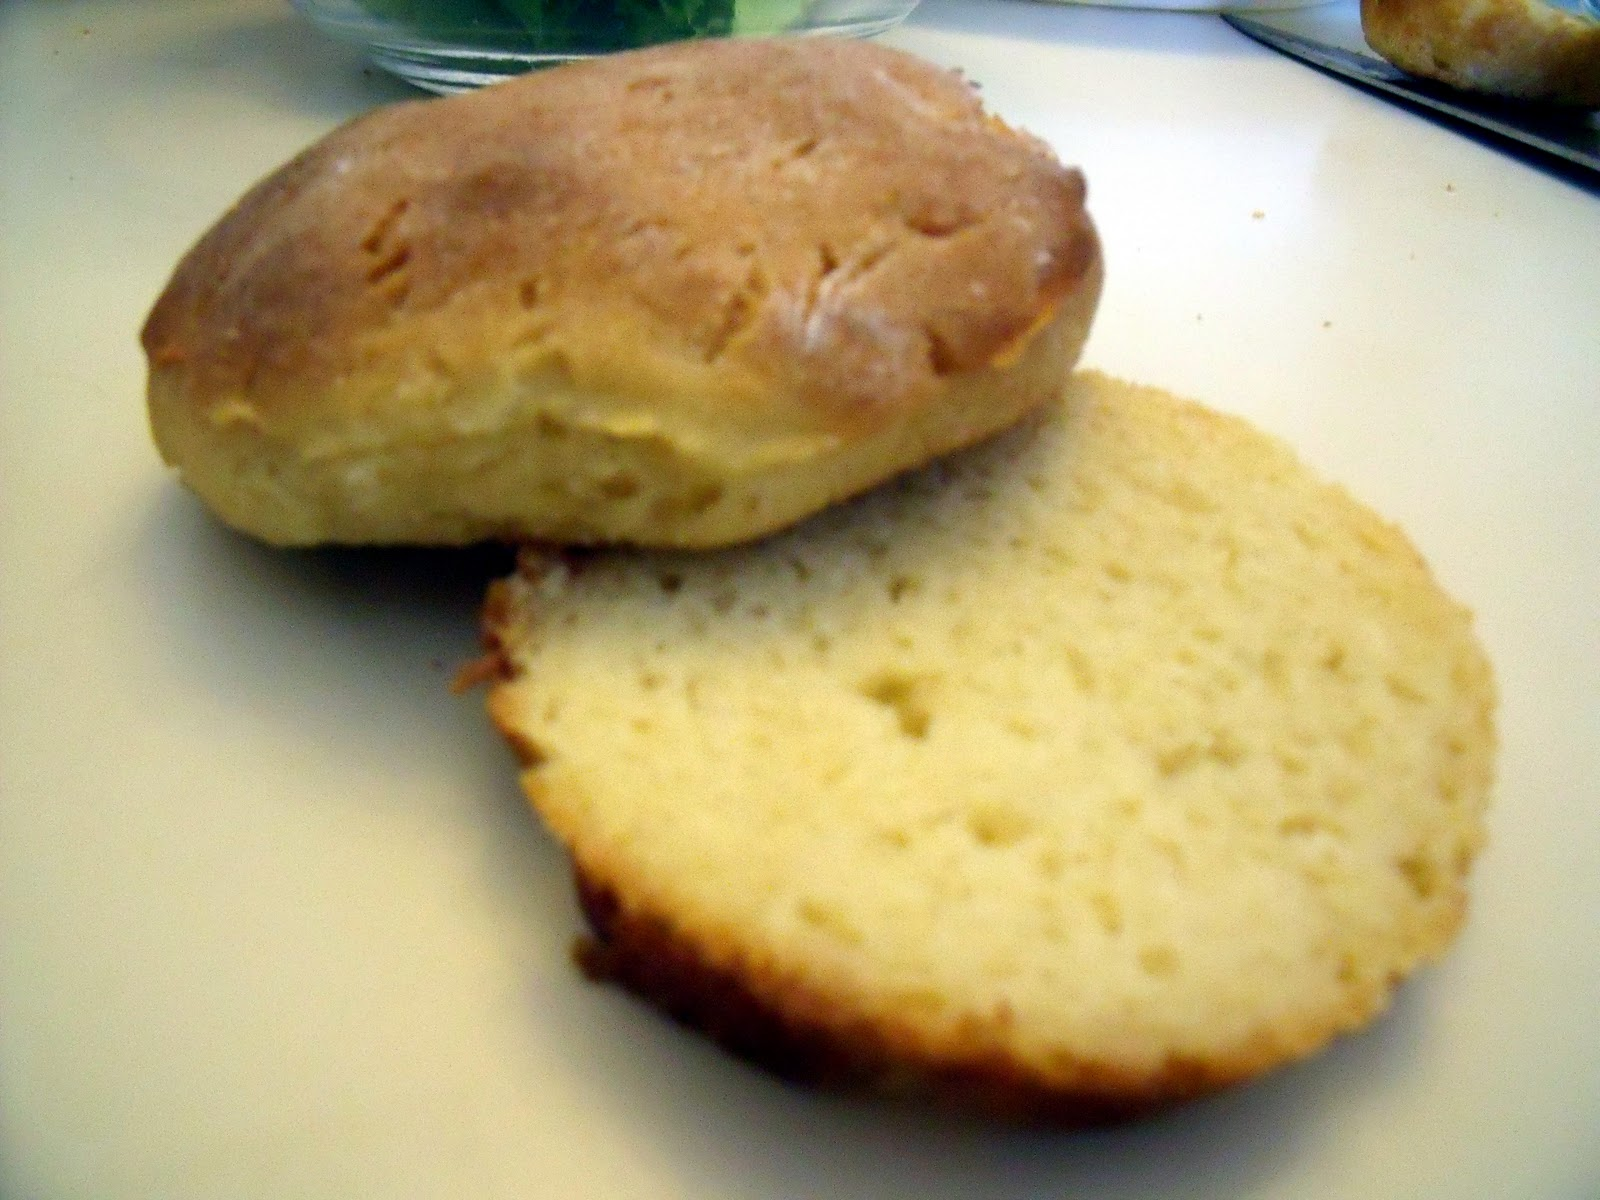 Pooka's What's for Dinner: Gluten Free Hamburger Buns